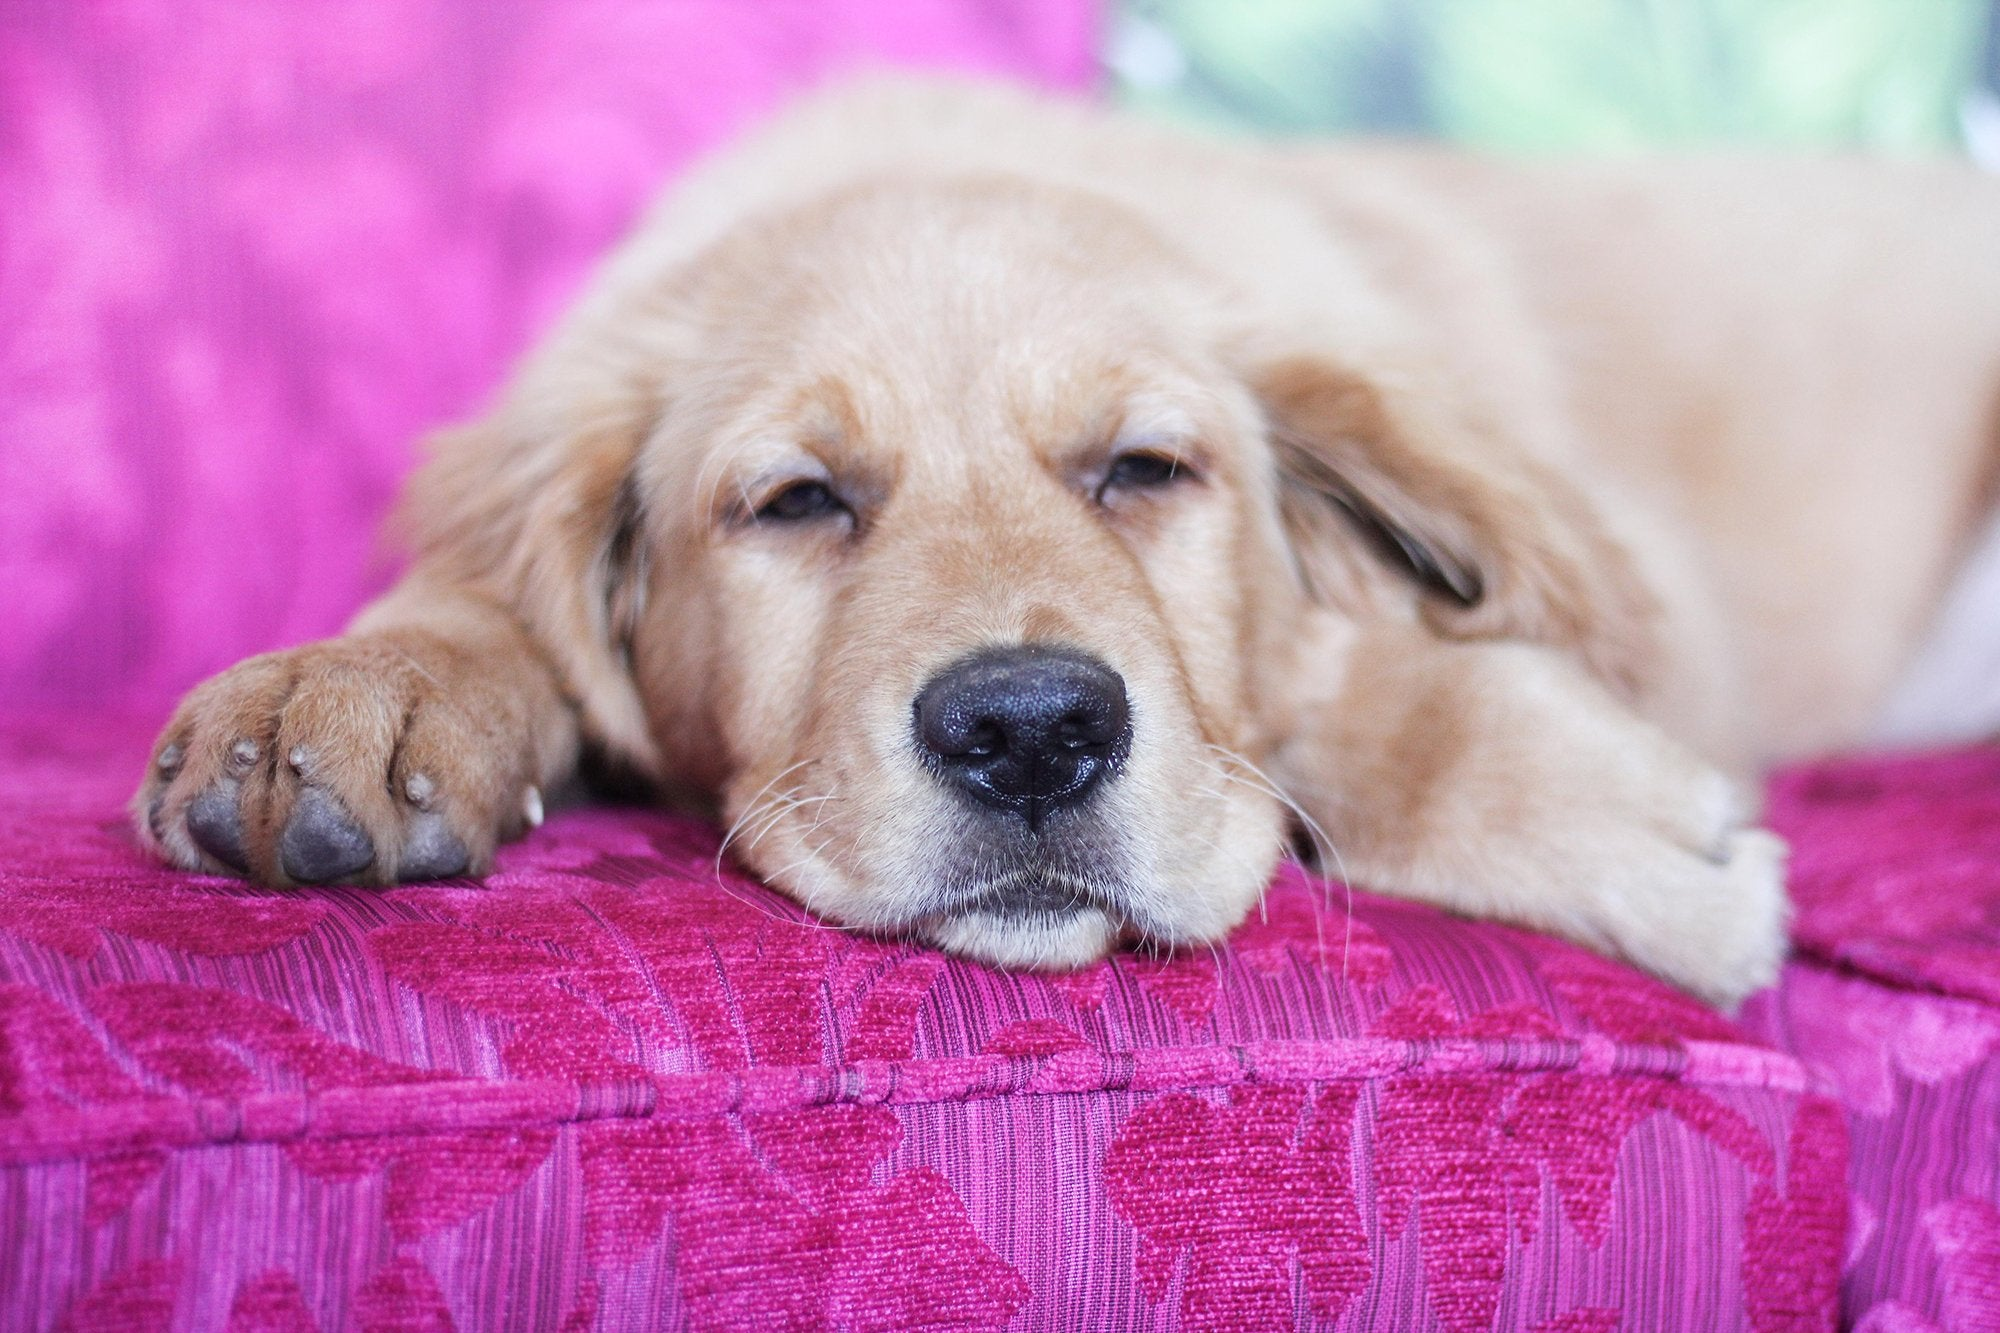 Dog Tired: 6 Reasons Your Dog Is So Sleepy!